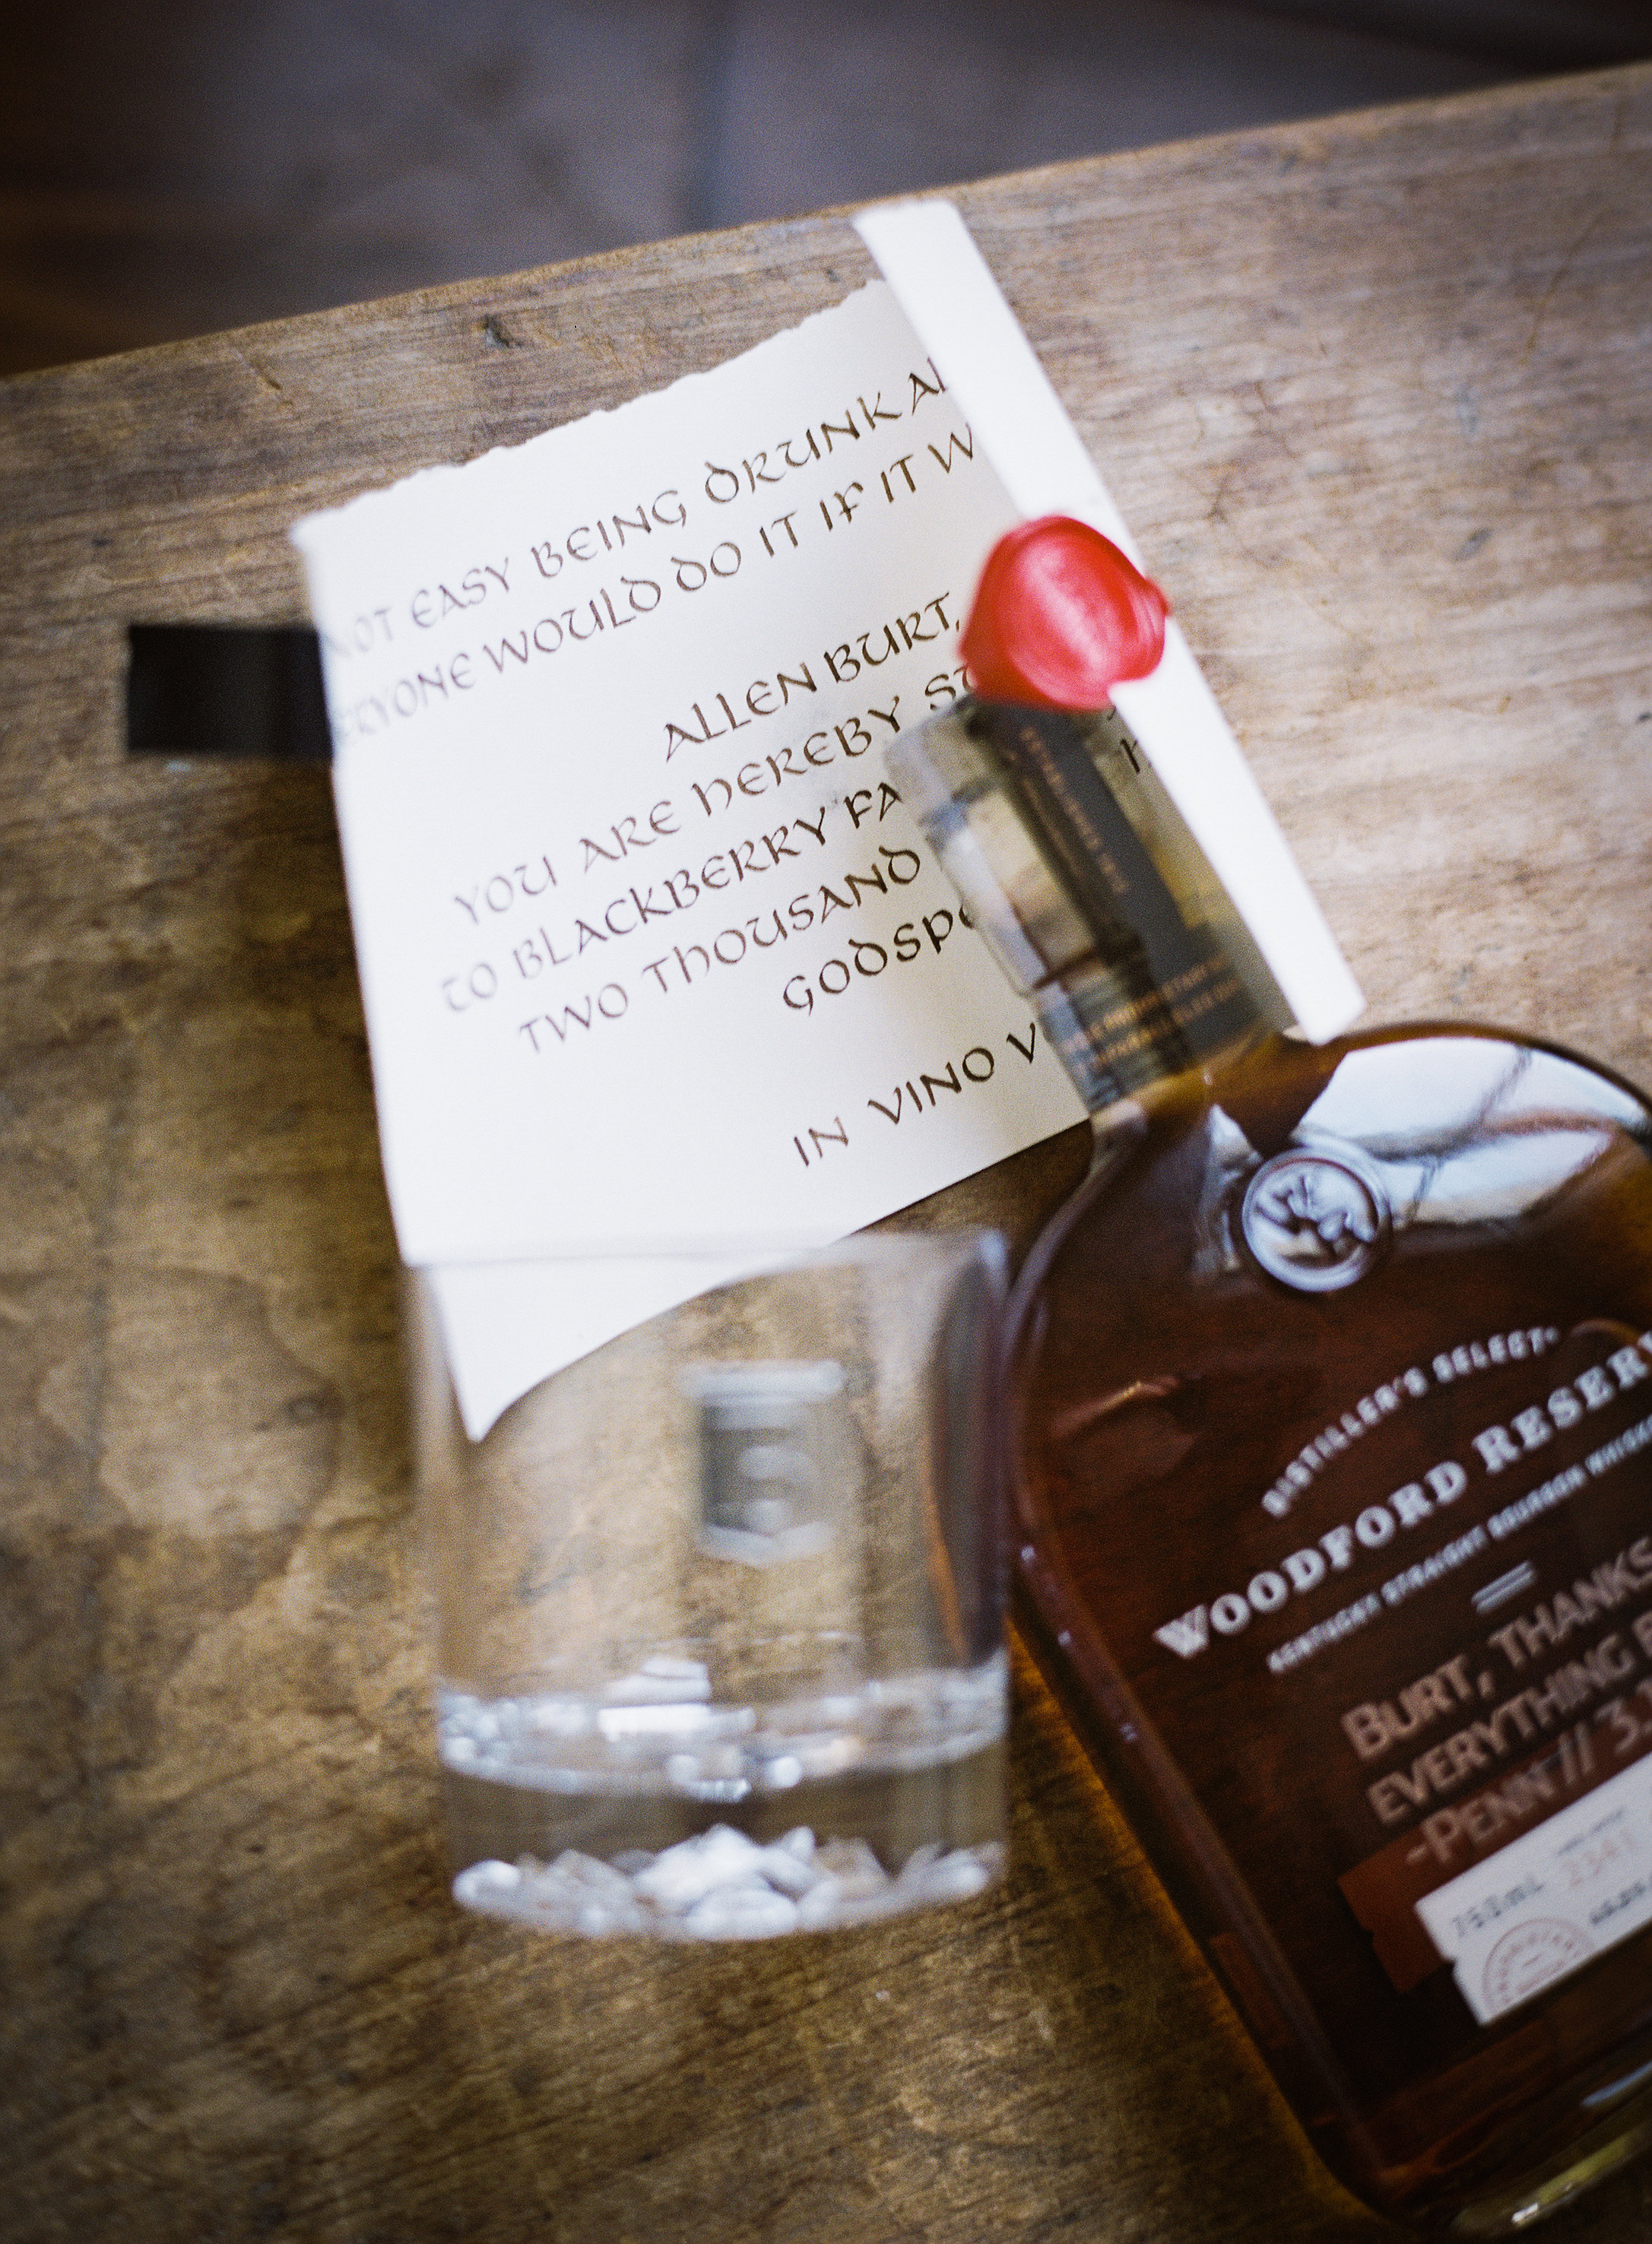 Groomsman gift and summons scroll in uncial calligraphy from Sendaraven.co   by www.chavelli.com and sendaraven.co